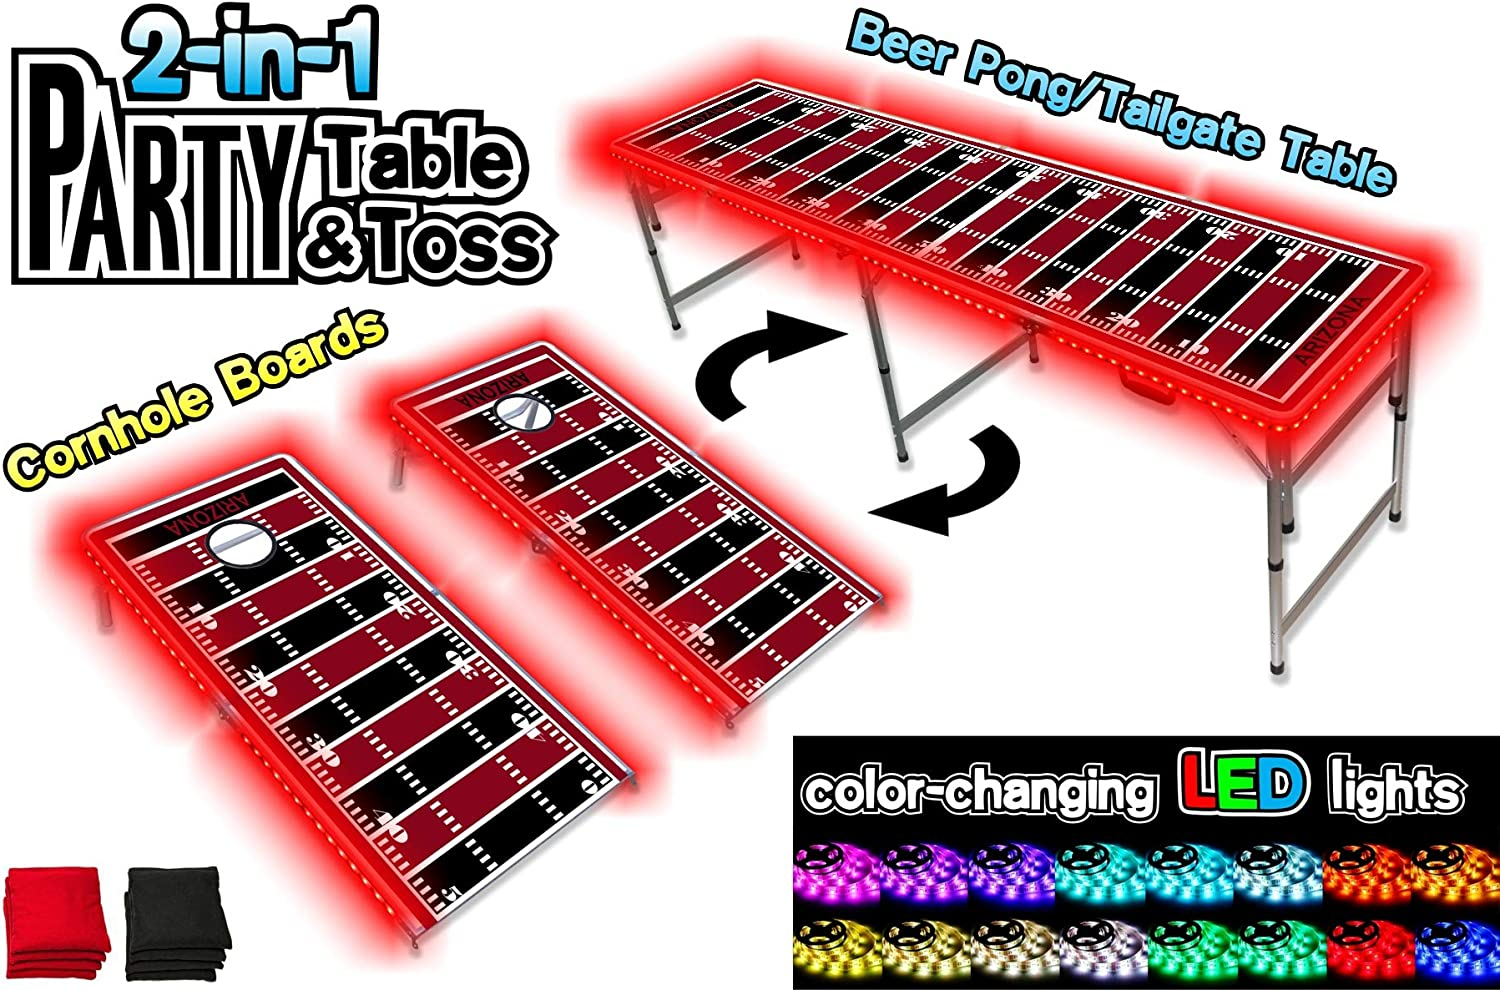 PartyPongTables  2in1 Arizona Football Field with LED Lights 2in1 Cornhole Boards & Beer Pong Tailgate Table with colorChanging LED Glow Lights  Arizona Football Field